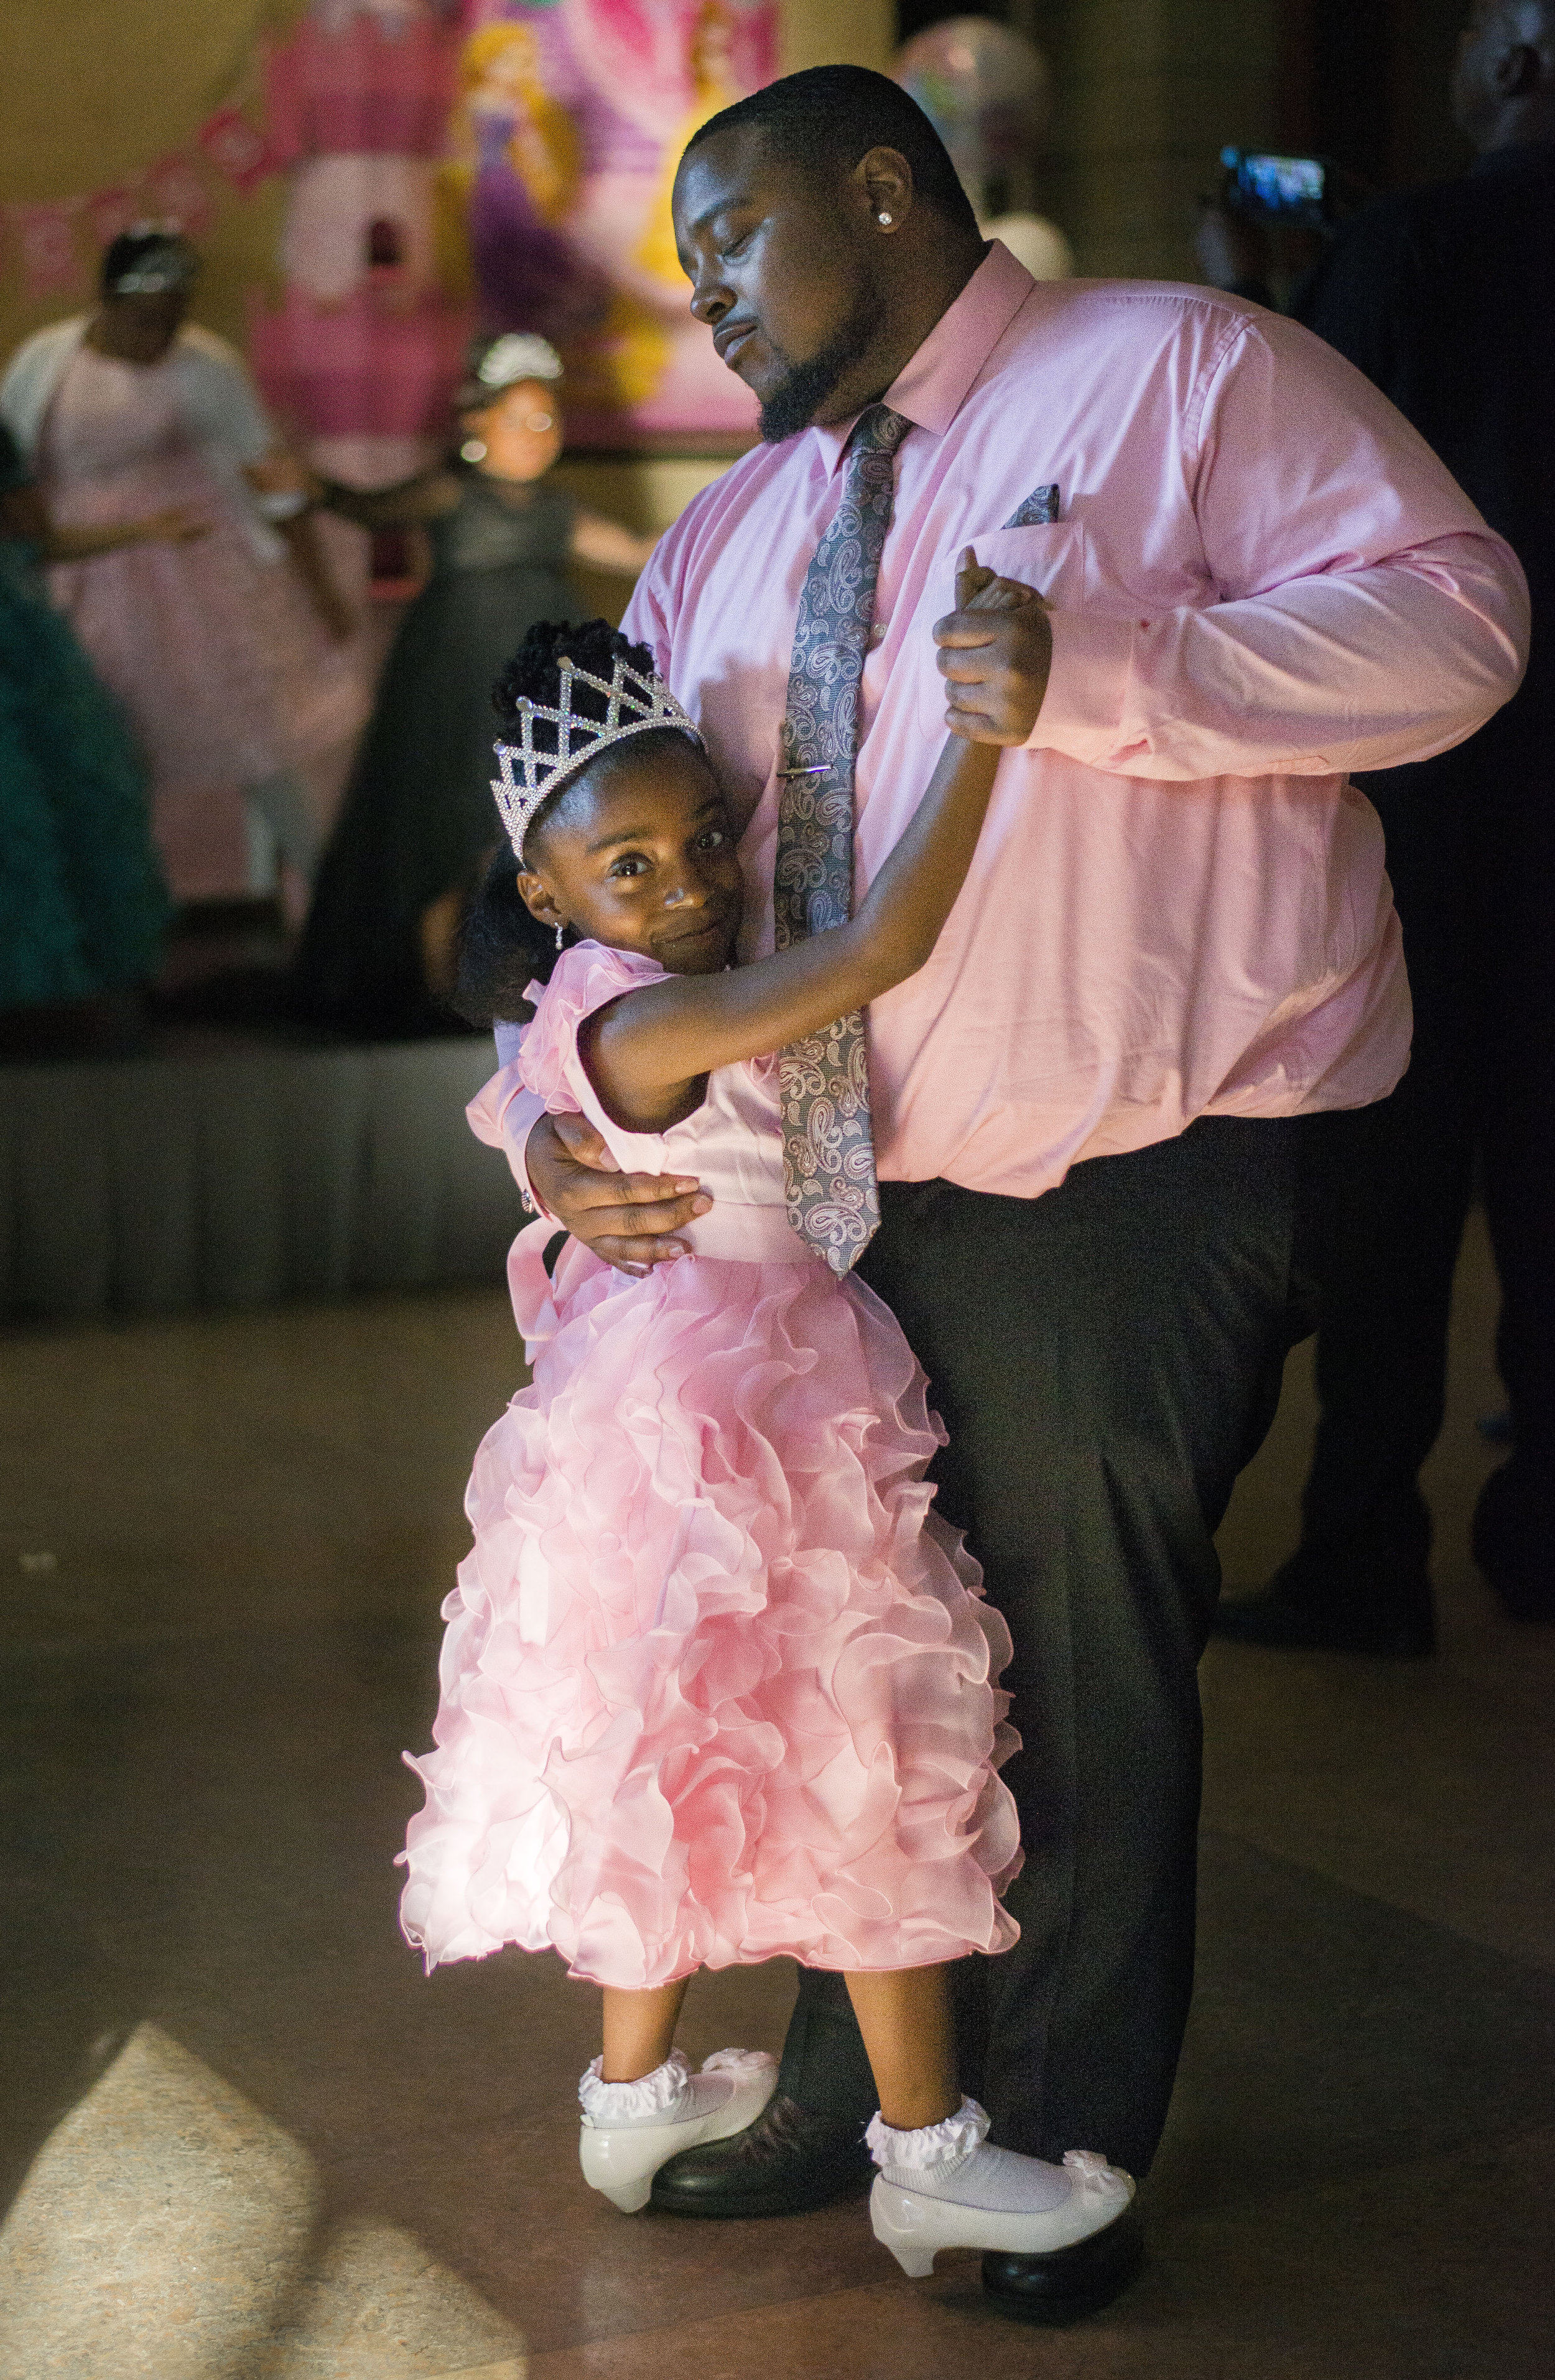 Ziara Glenn, 6, slow dances with her father, Jamaar Glenn, 26, to a song at the Daddy Daughter Princess Ball on June 17, 2016,at the Fort Wayne Community Center.